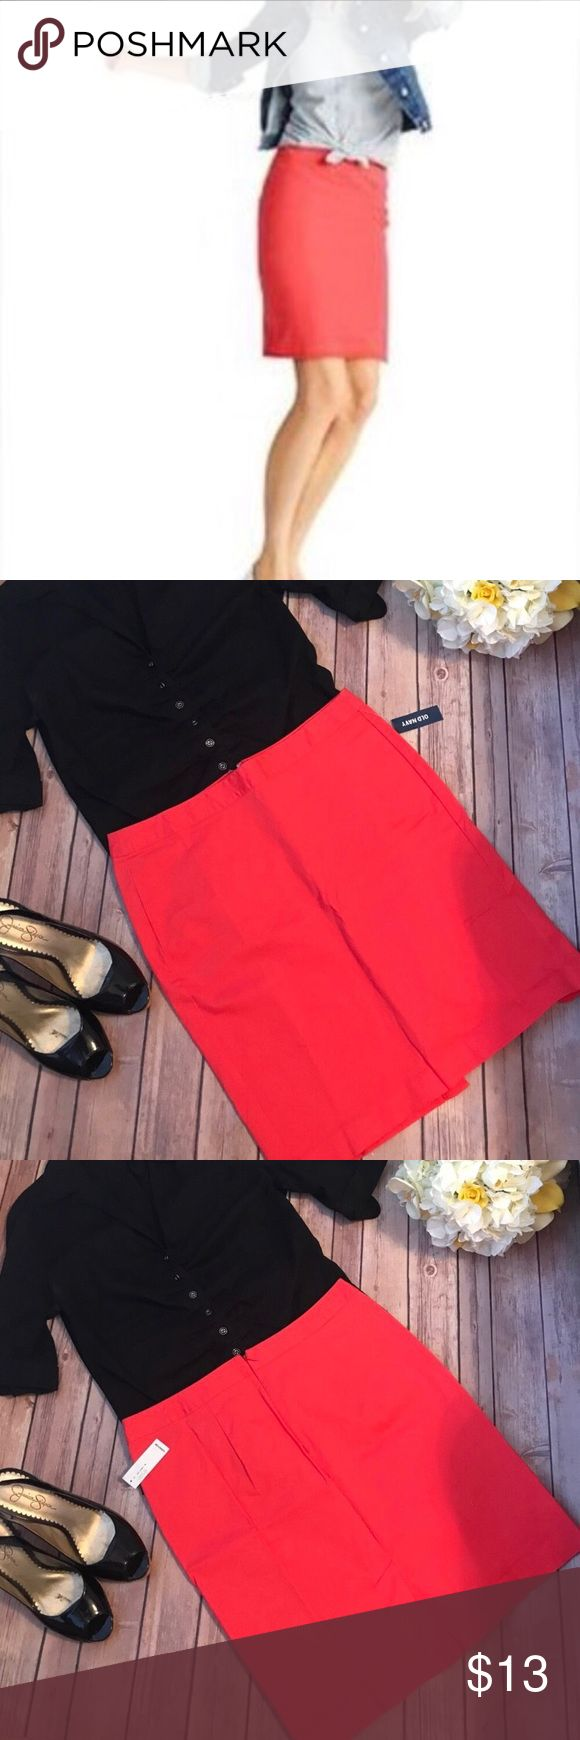 "{Old Navy} Coral Pencil Skirt Brand new with tags attached. 20"" length, 16"" across, 5.5"" slit in the back. 97% Cotton, 3% spandex. Old Navy Skirts Mini"